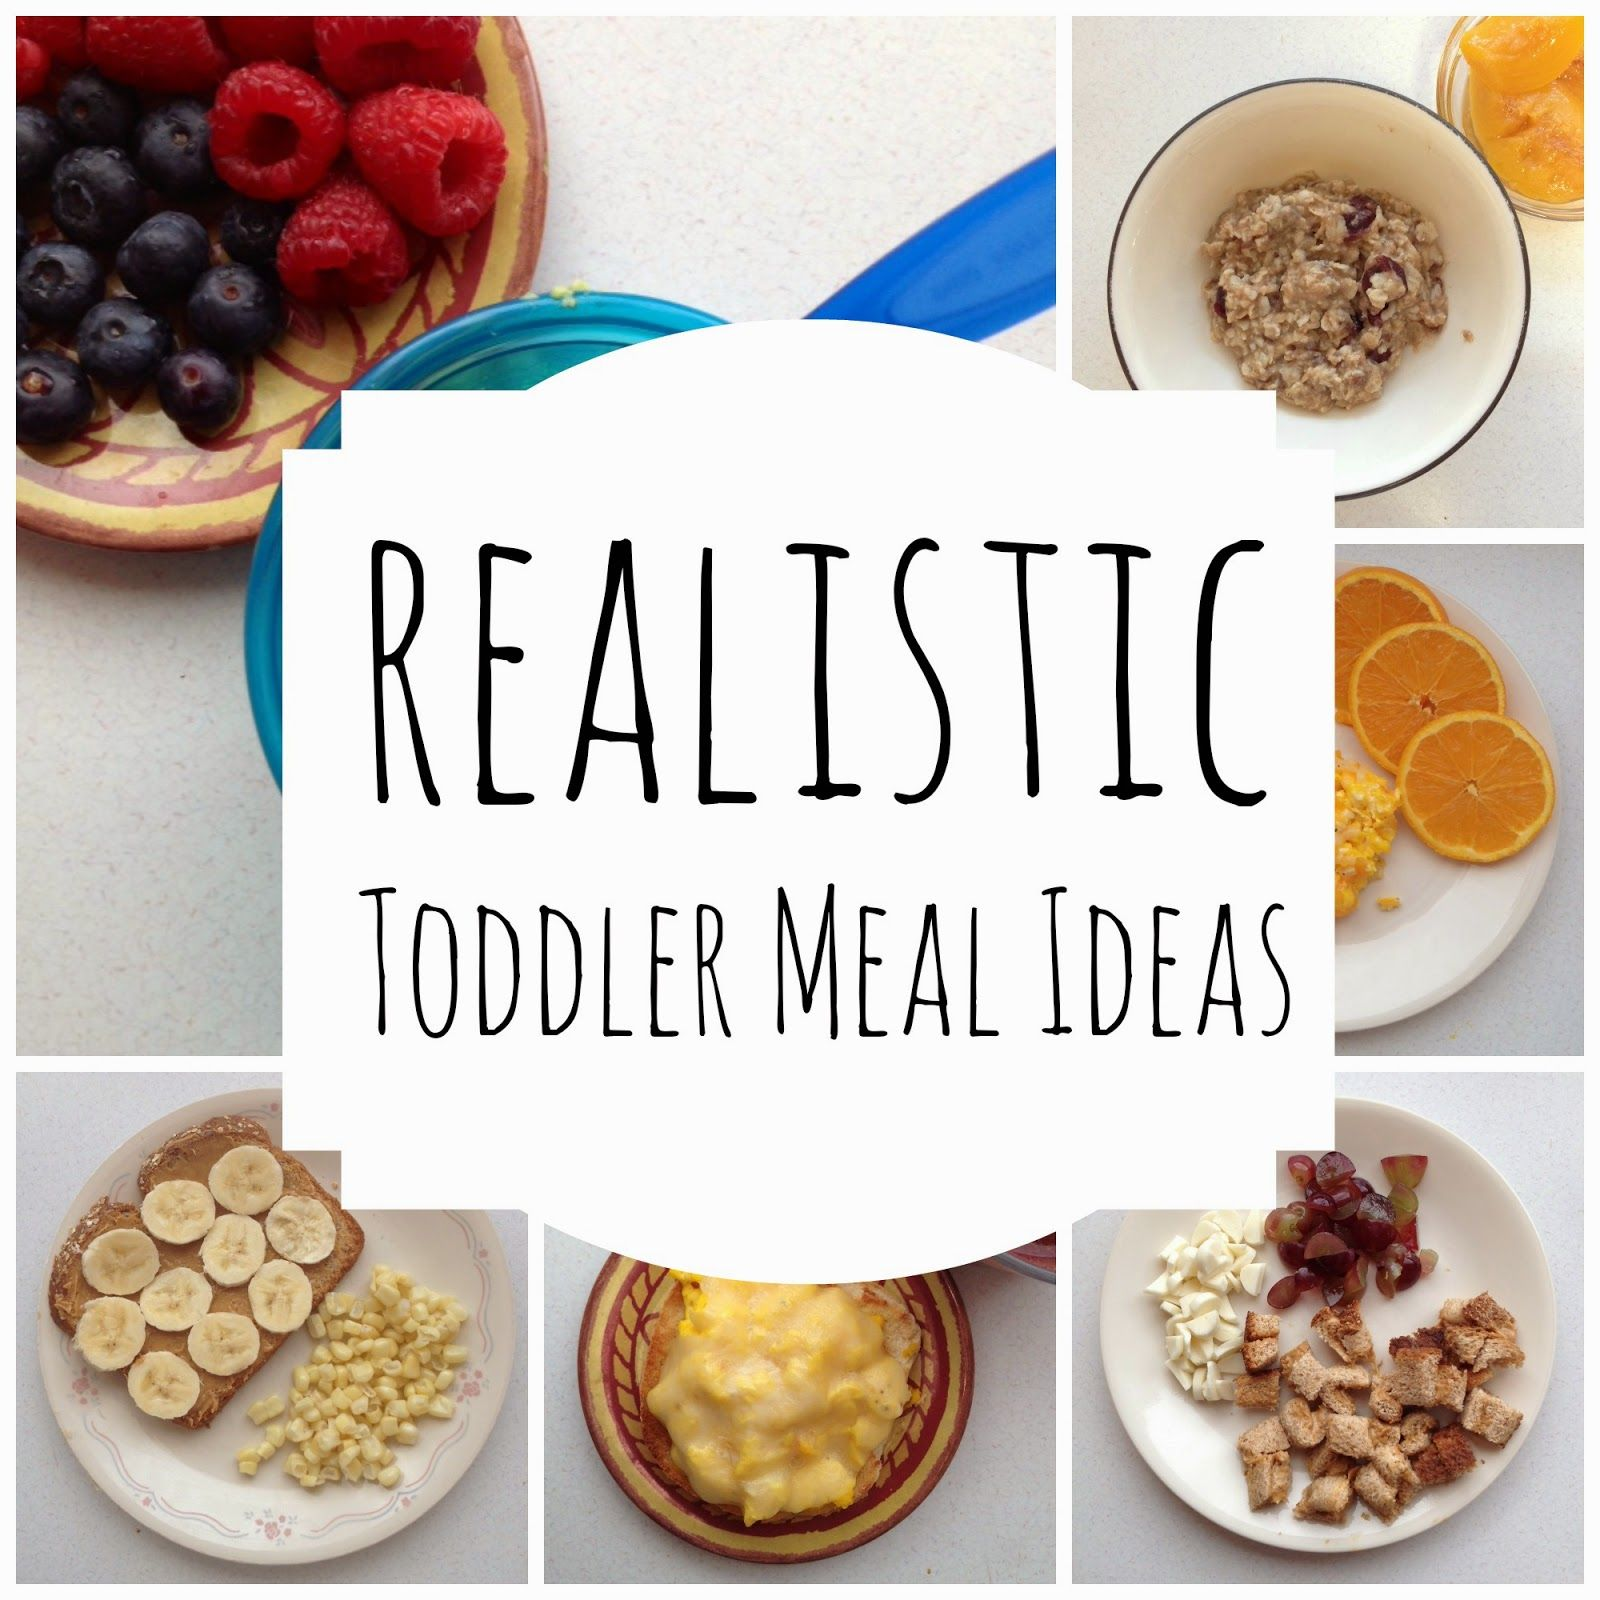 Realistic Toddler Meal Ideas